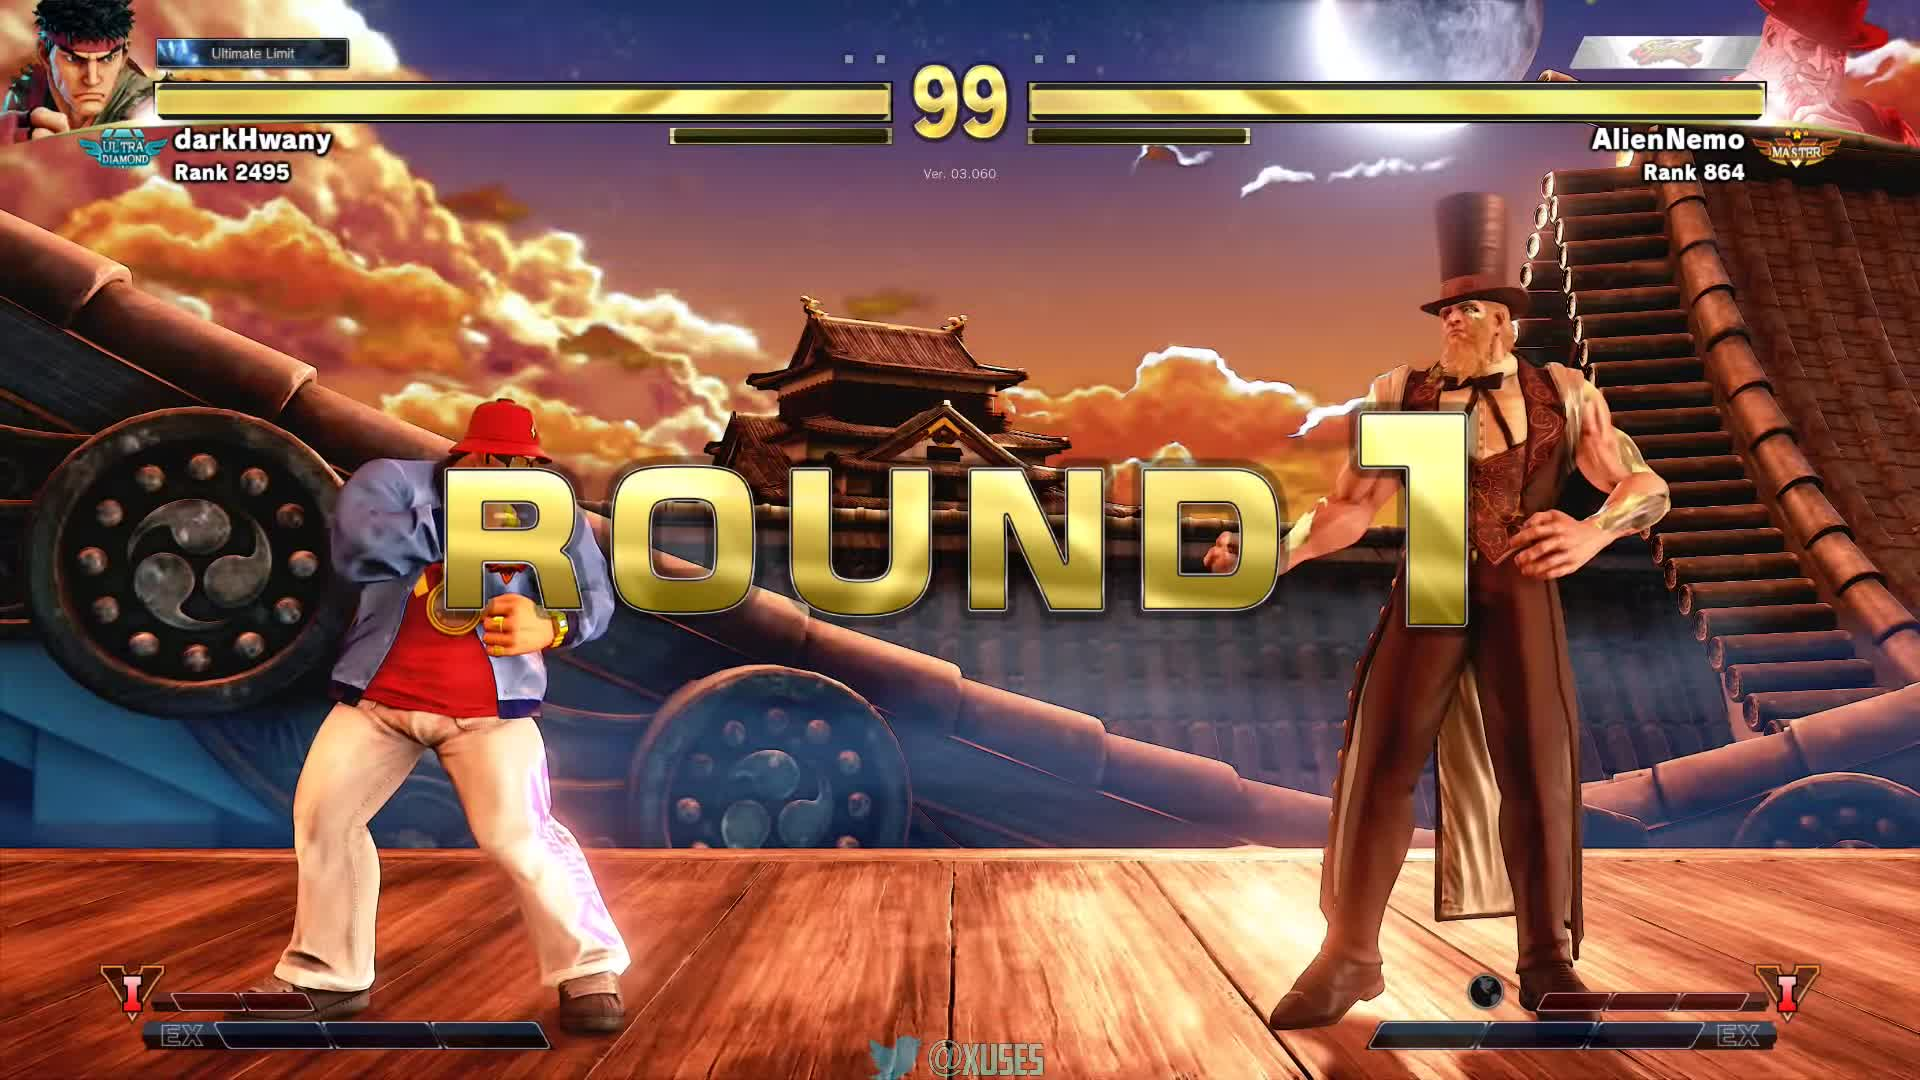 Street Fighter G Gifs Search | Search & Share on Homdor